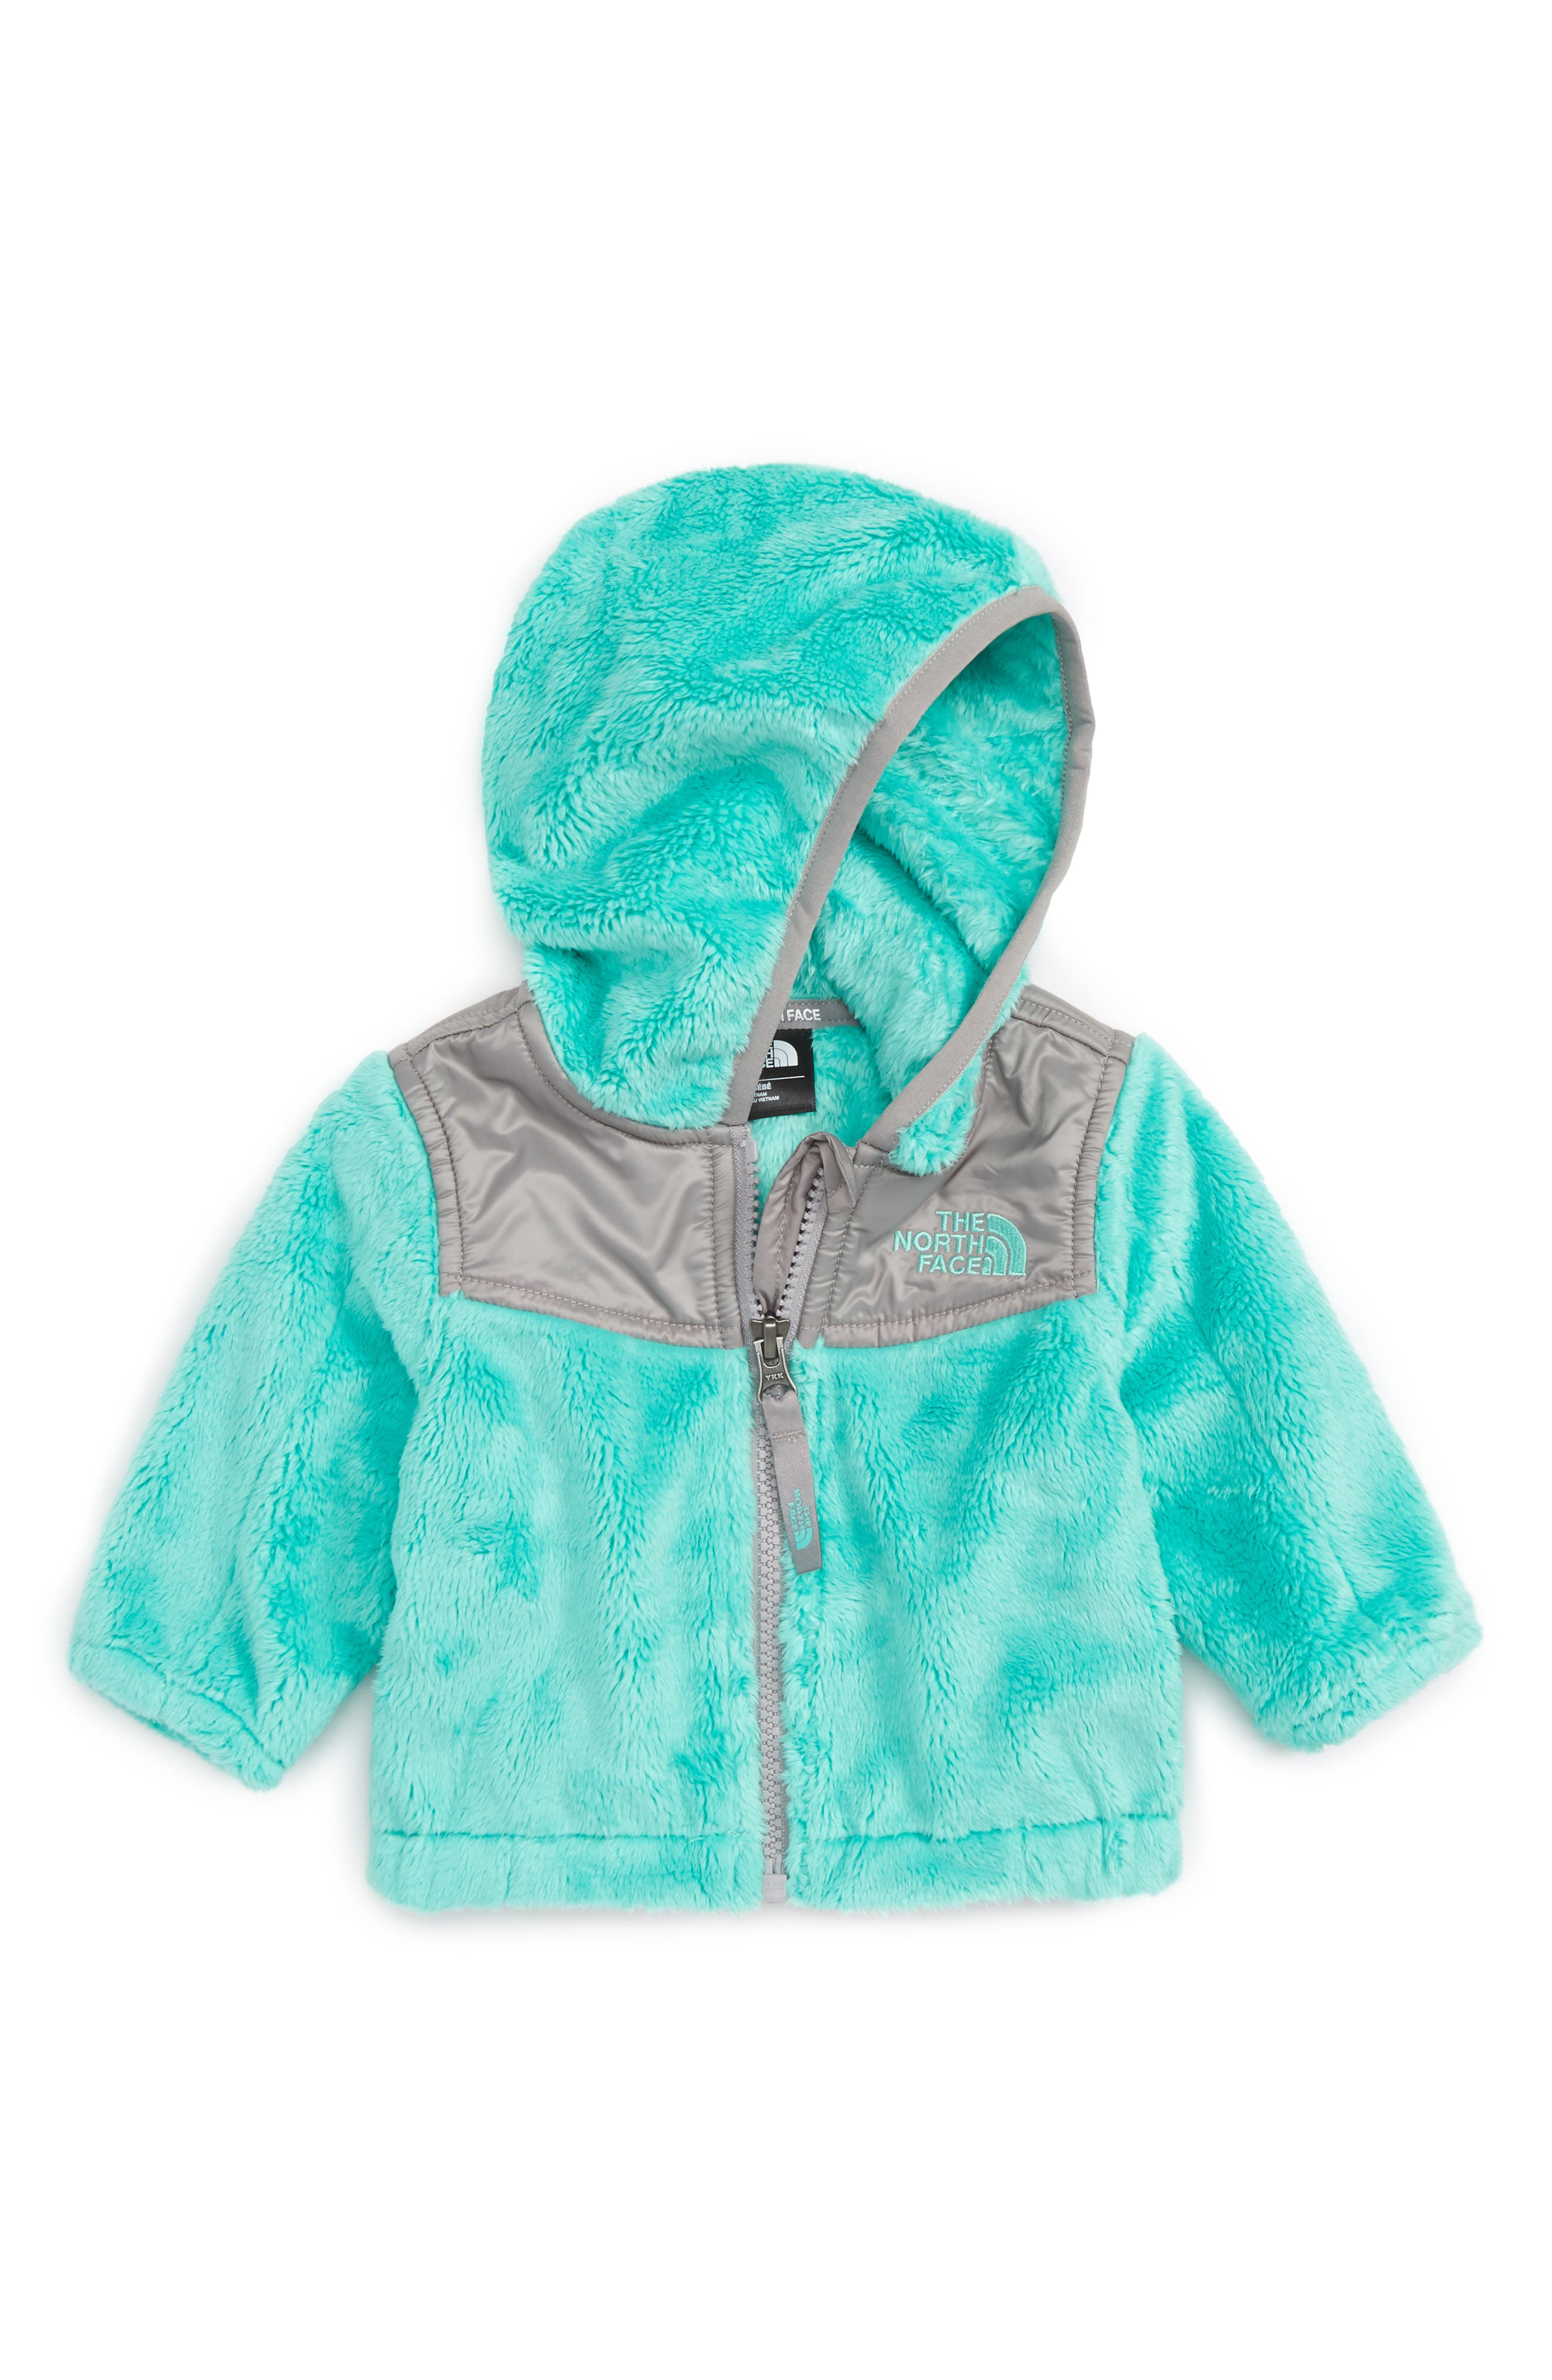 Alternate Image 1 Selected - The North Face 'Oso' Fleece Hooded Jacket (Baby Girls)